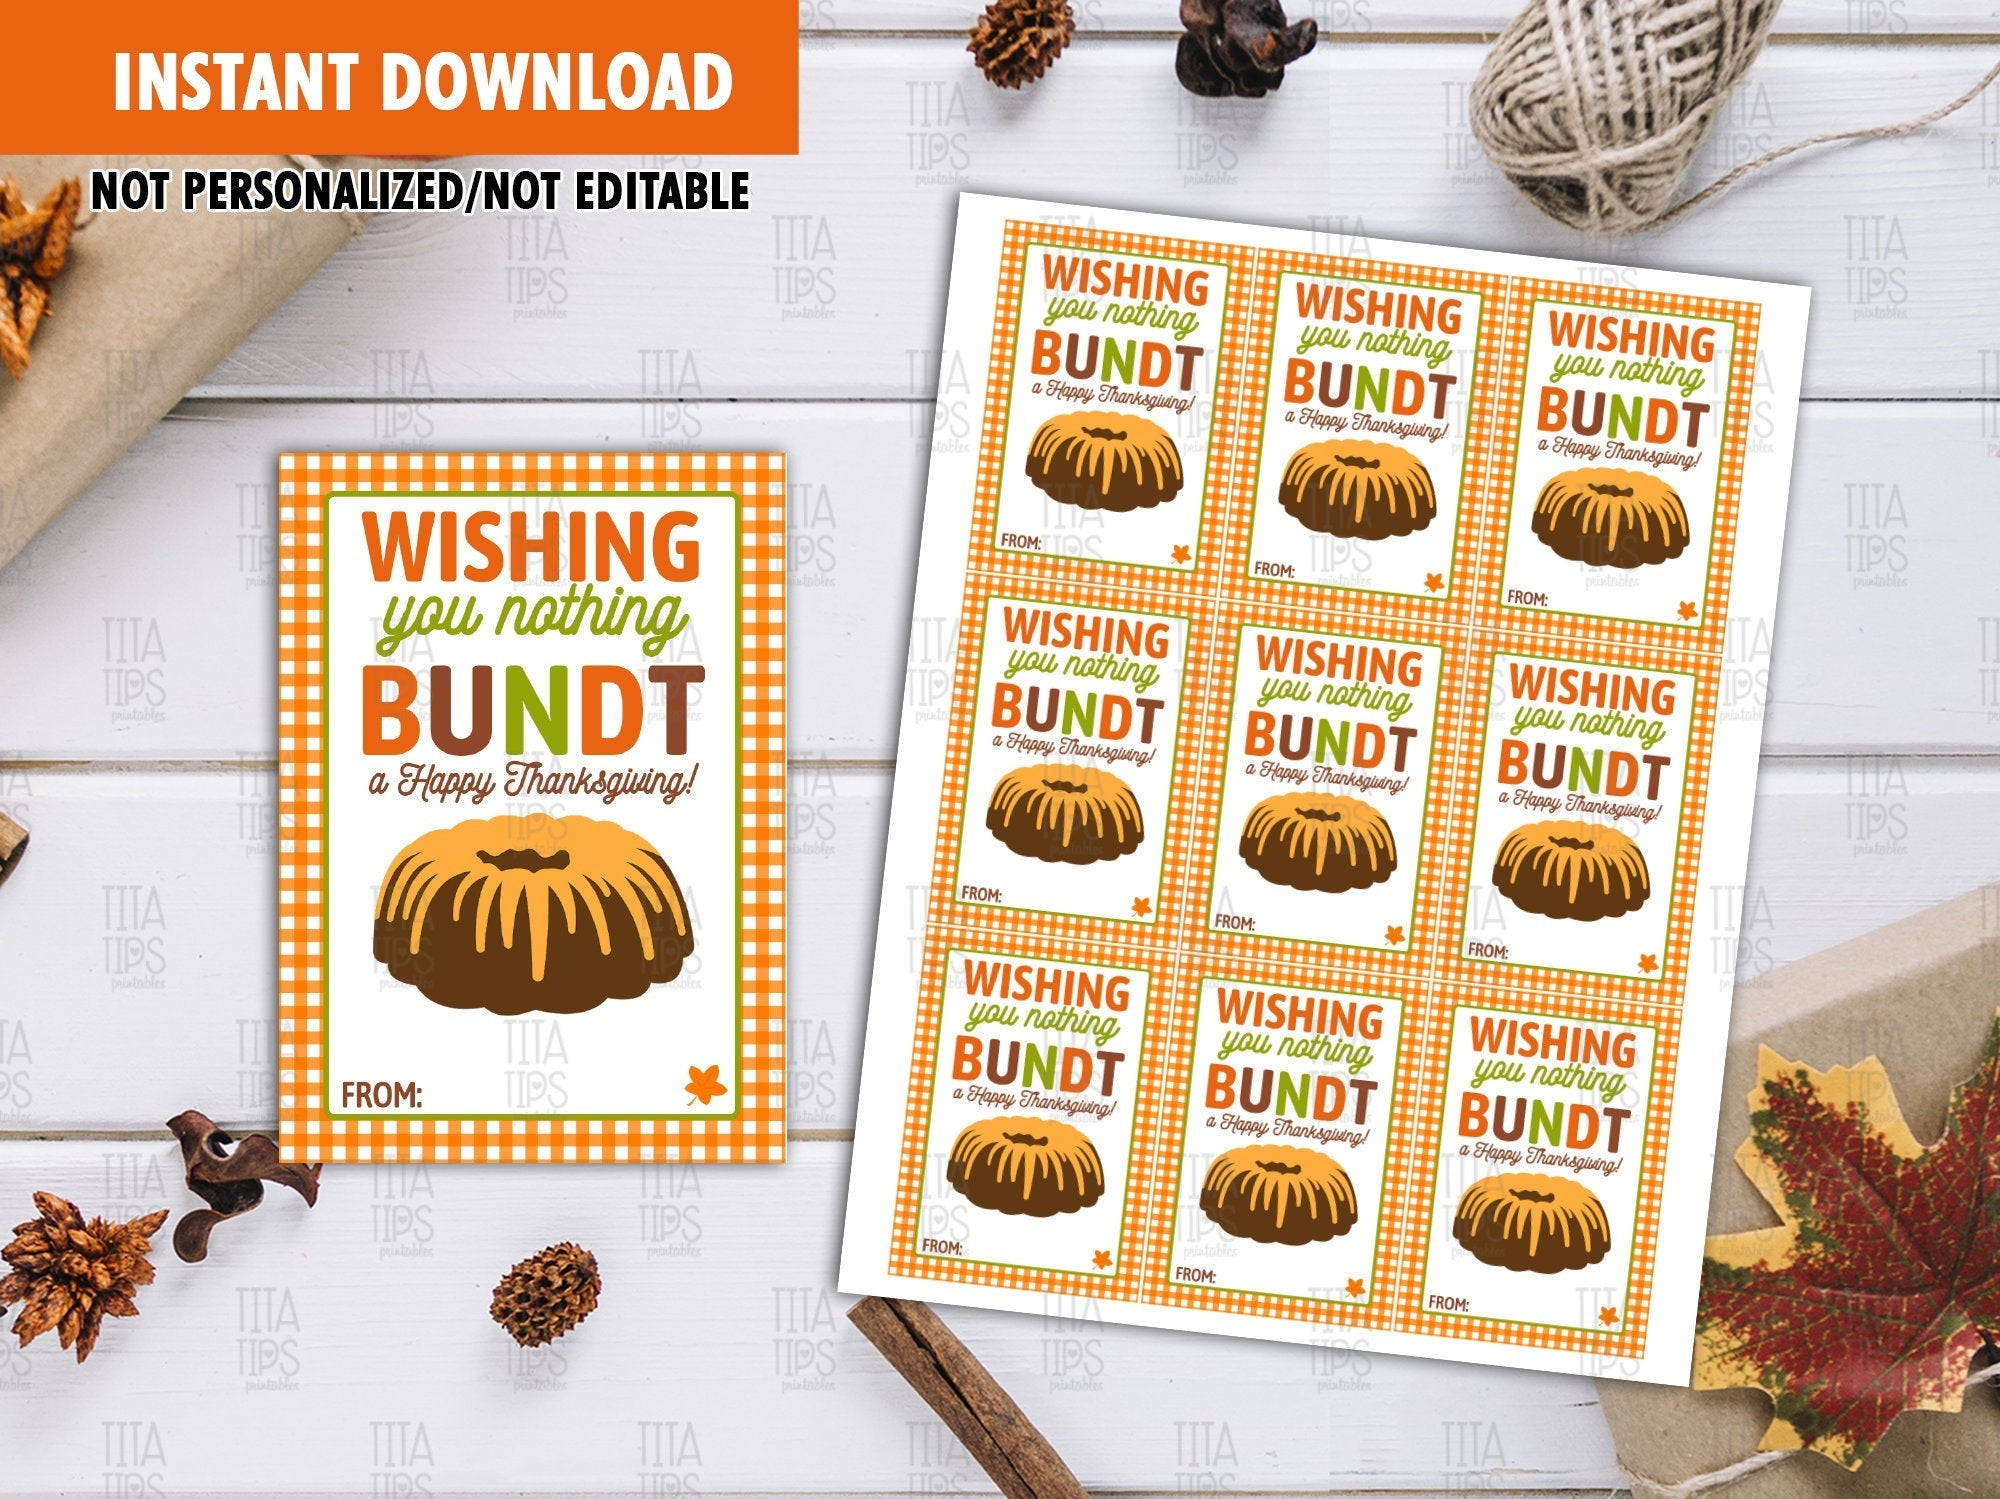 Wishing You Nothing Bundt A Happy Thanksgiving Favor Tags, Bundt Cake Printable Card, Instant Download - TitaTipsPrintables